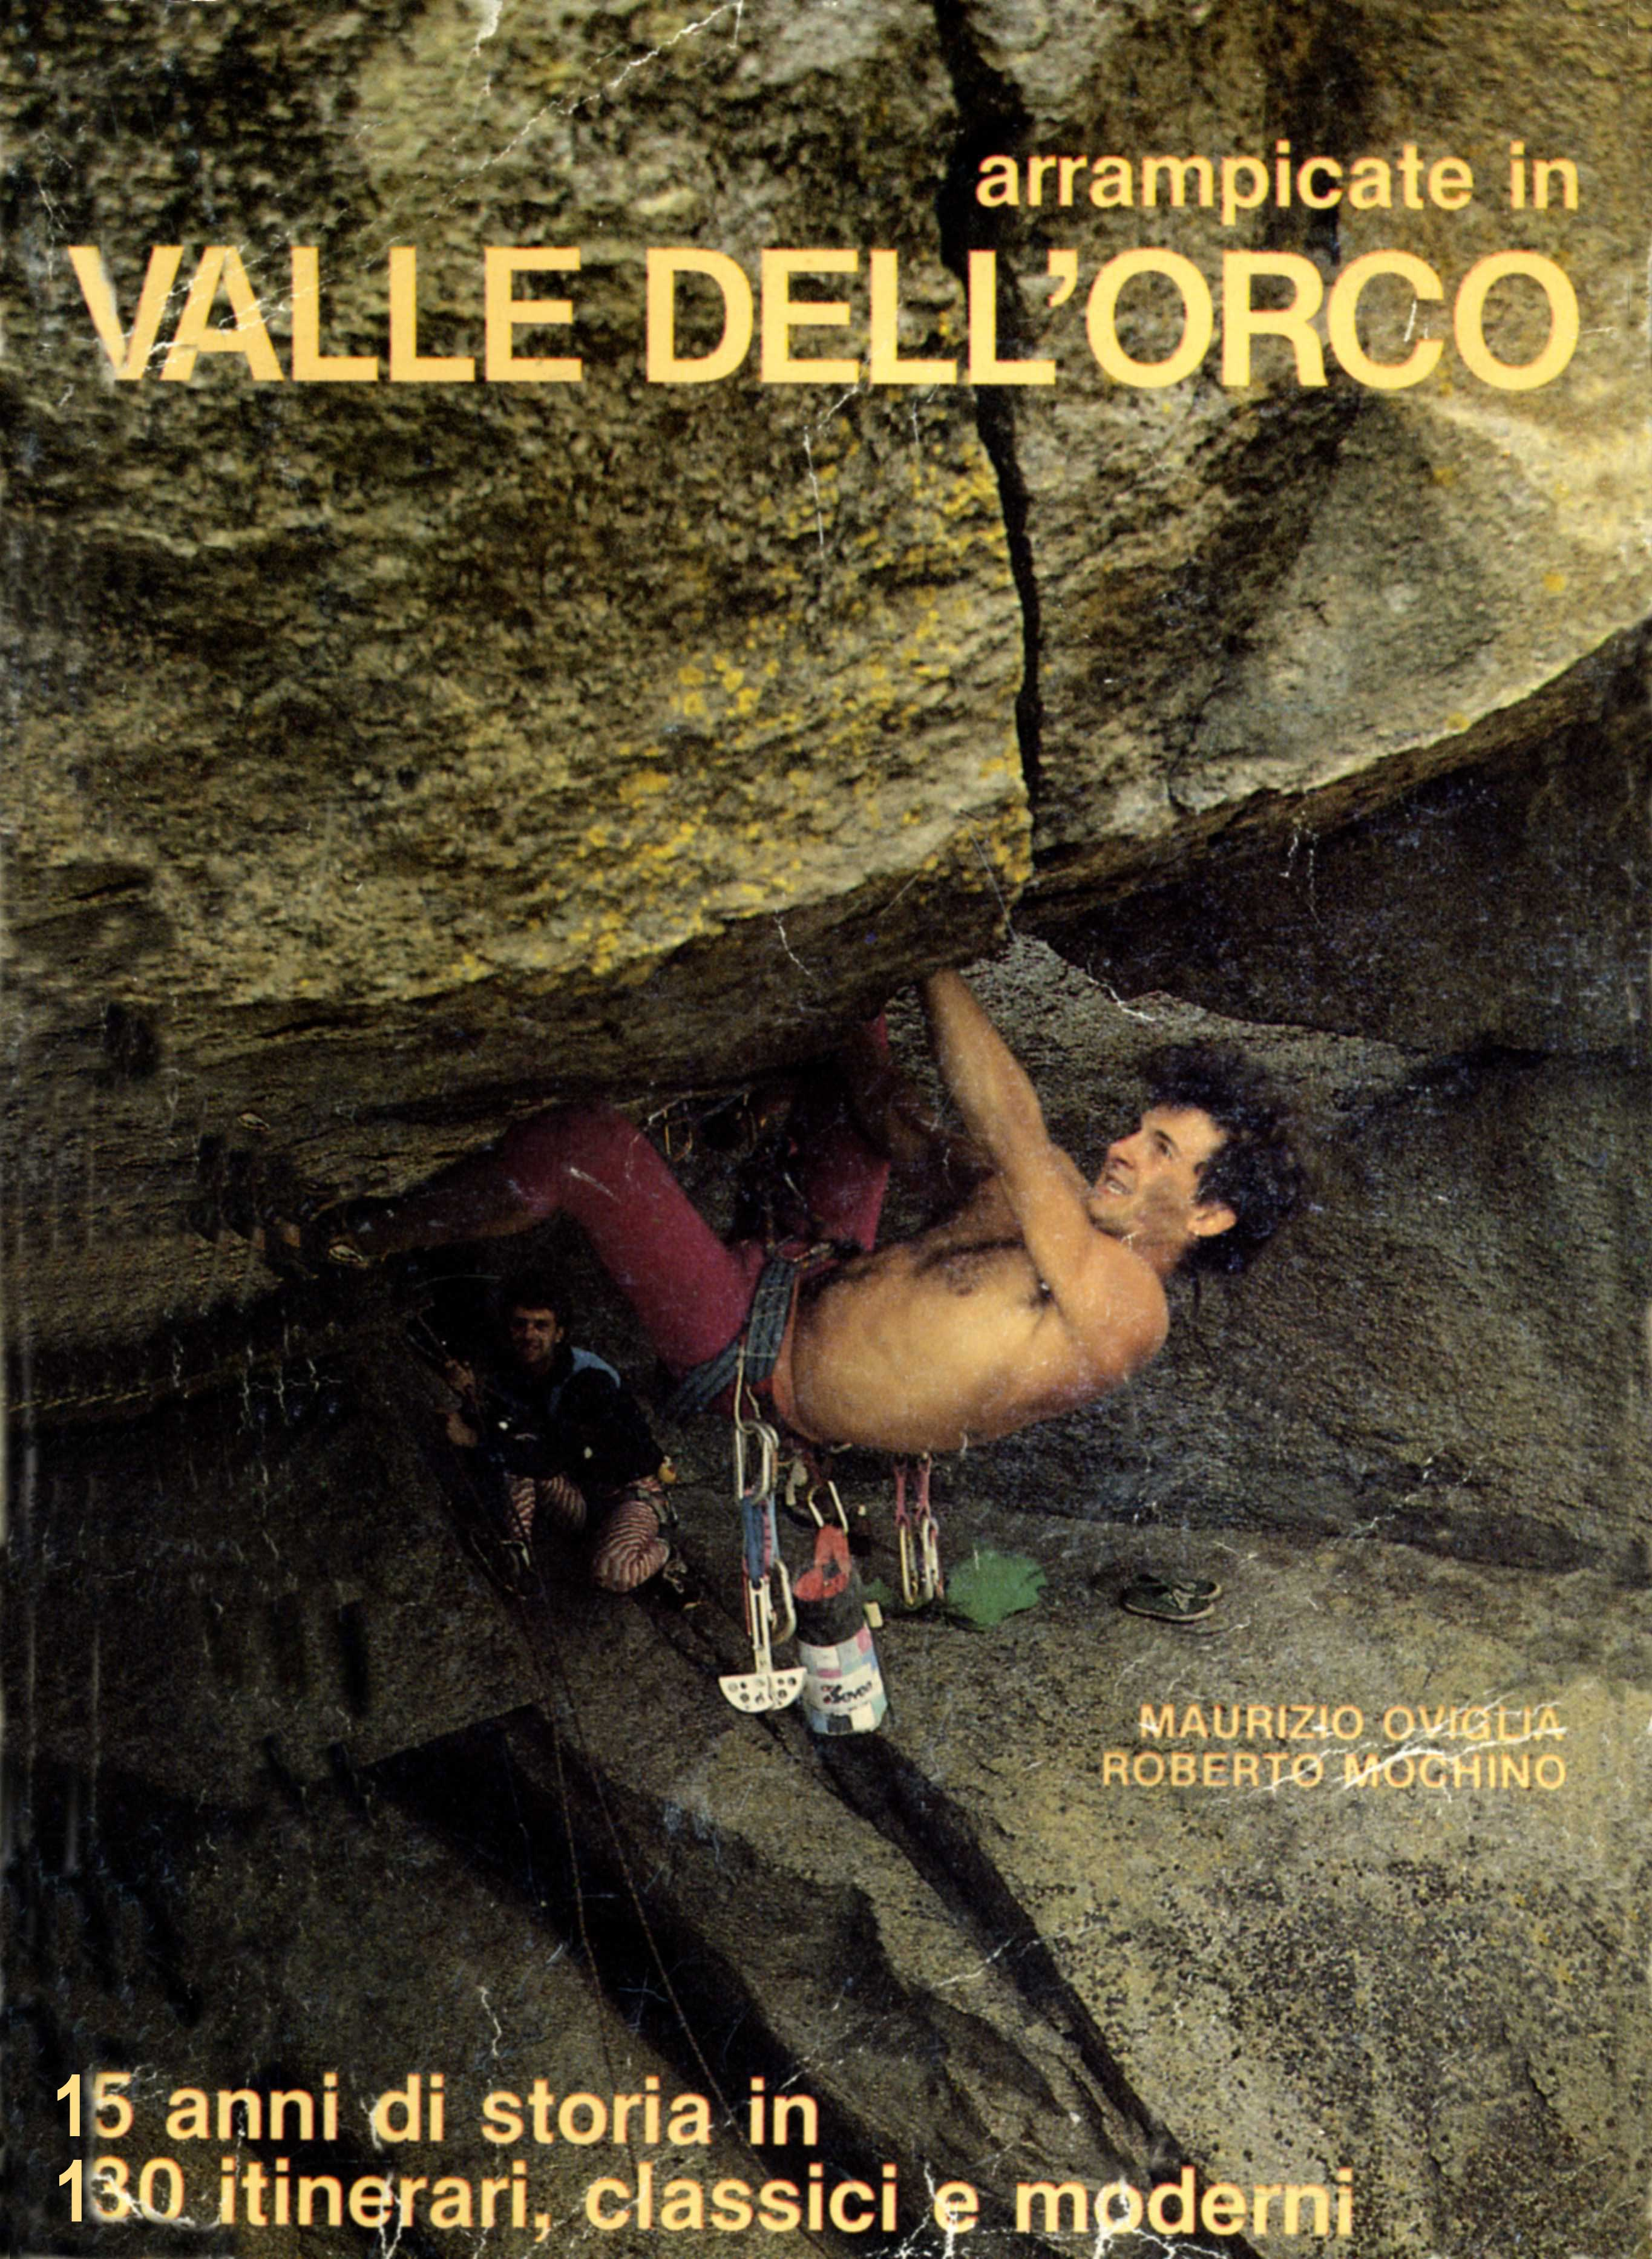 Arrampicate in Valle dell'Orco